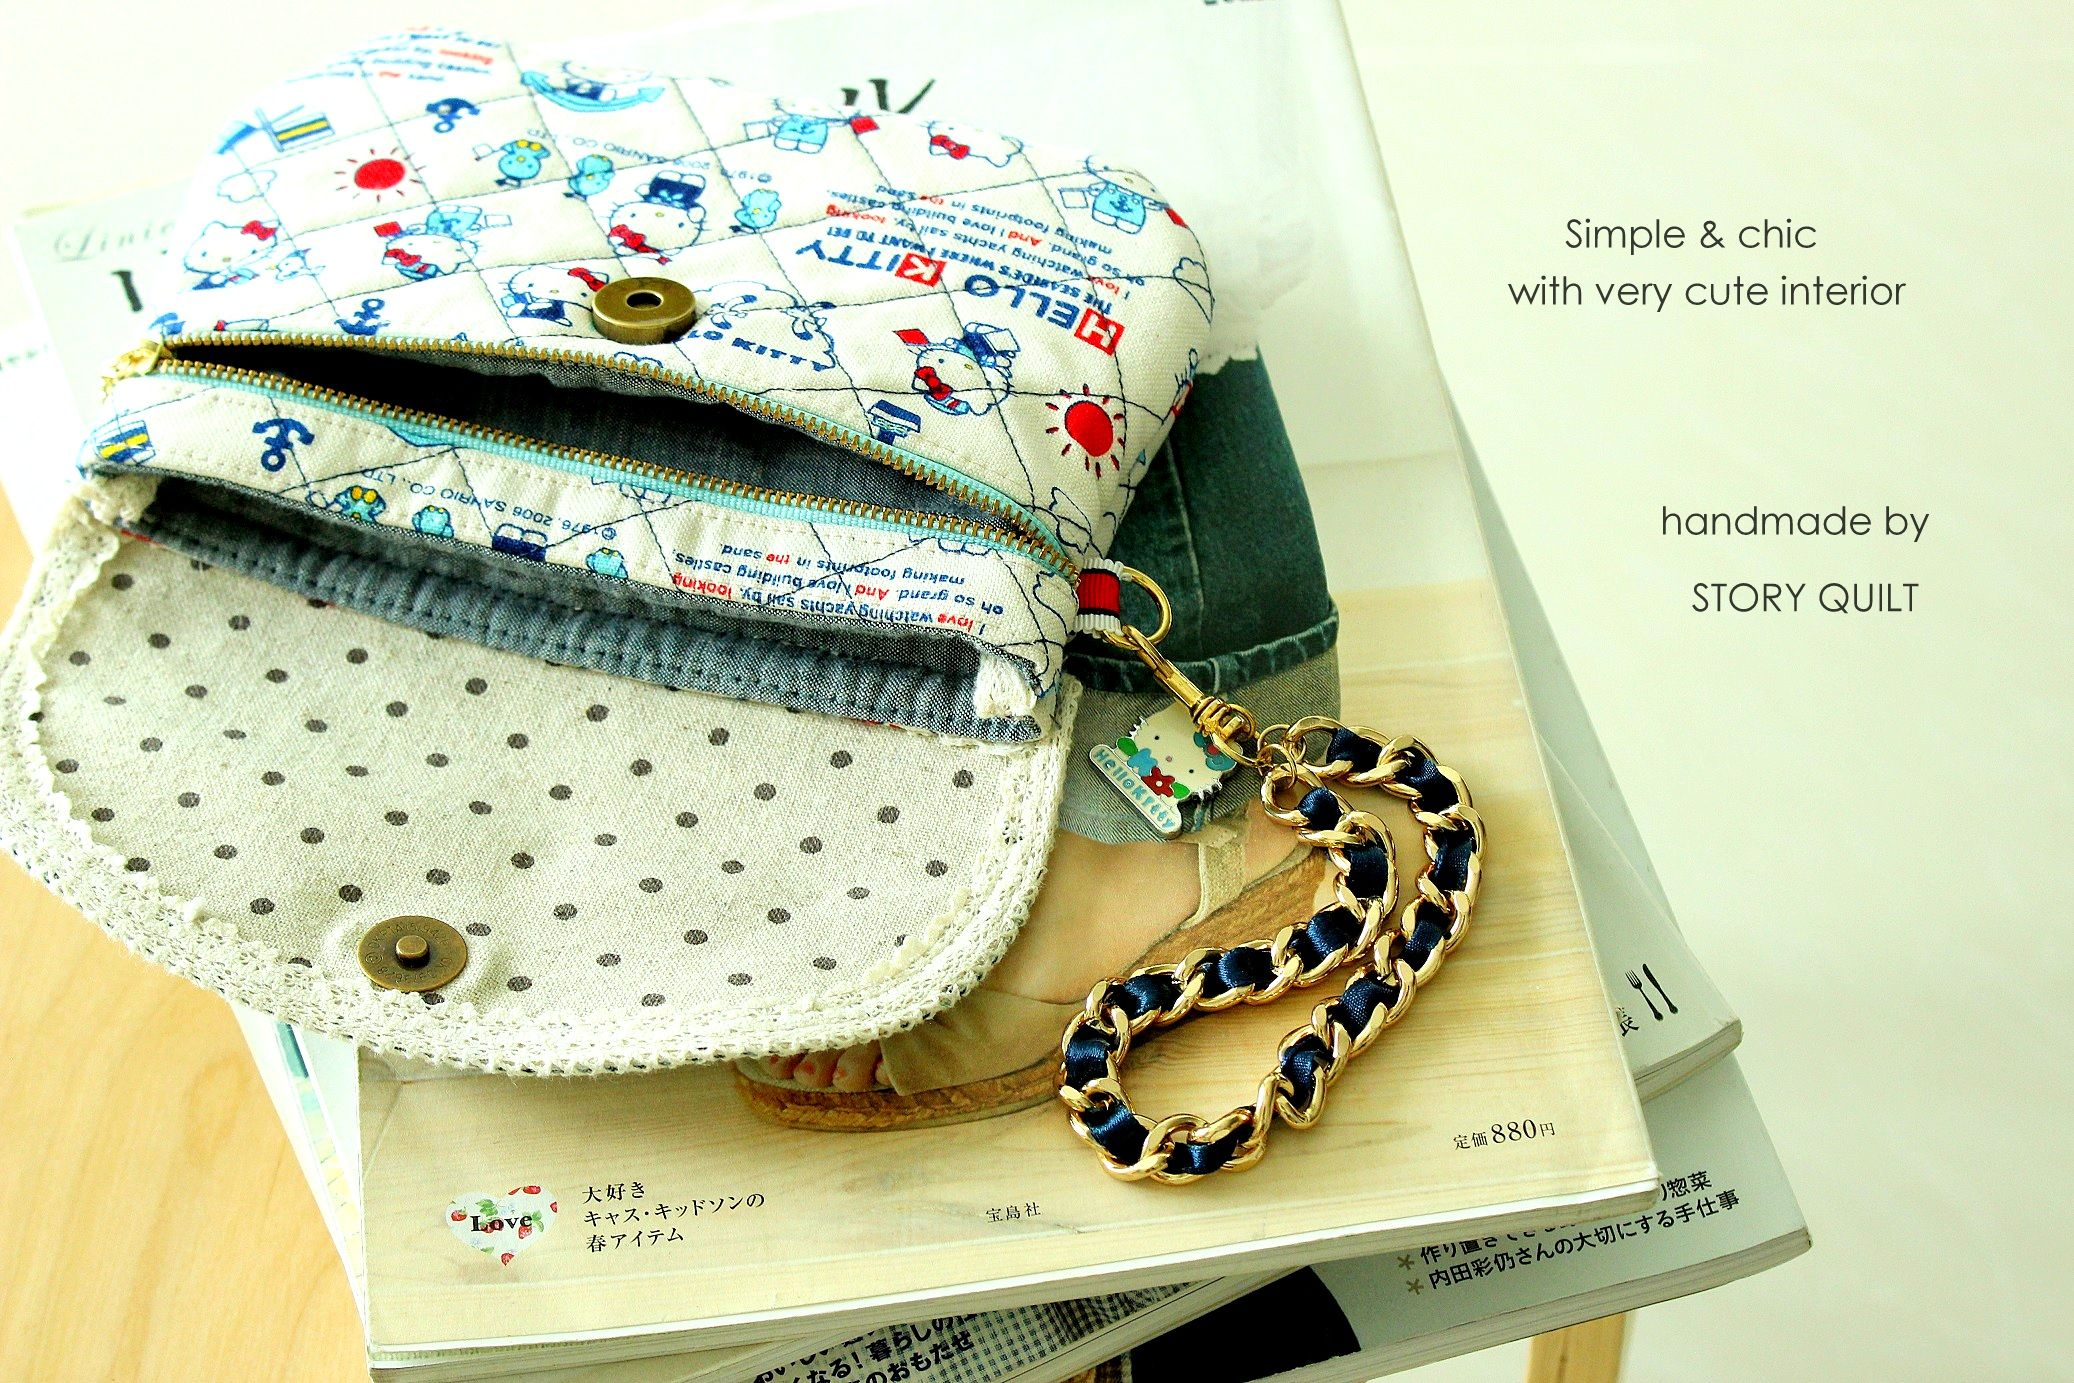 zakka, zakka style, Japanese zakka style, Hello Kitty clutch purse ...